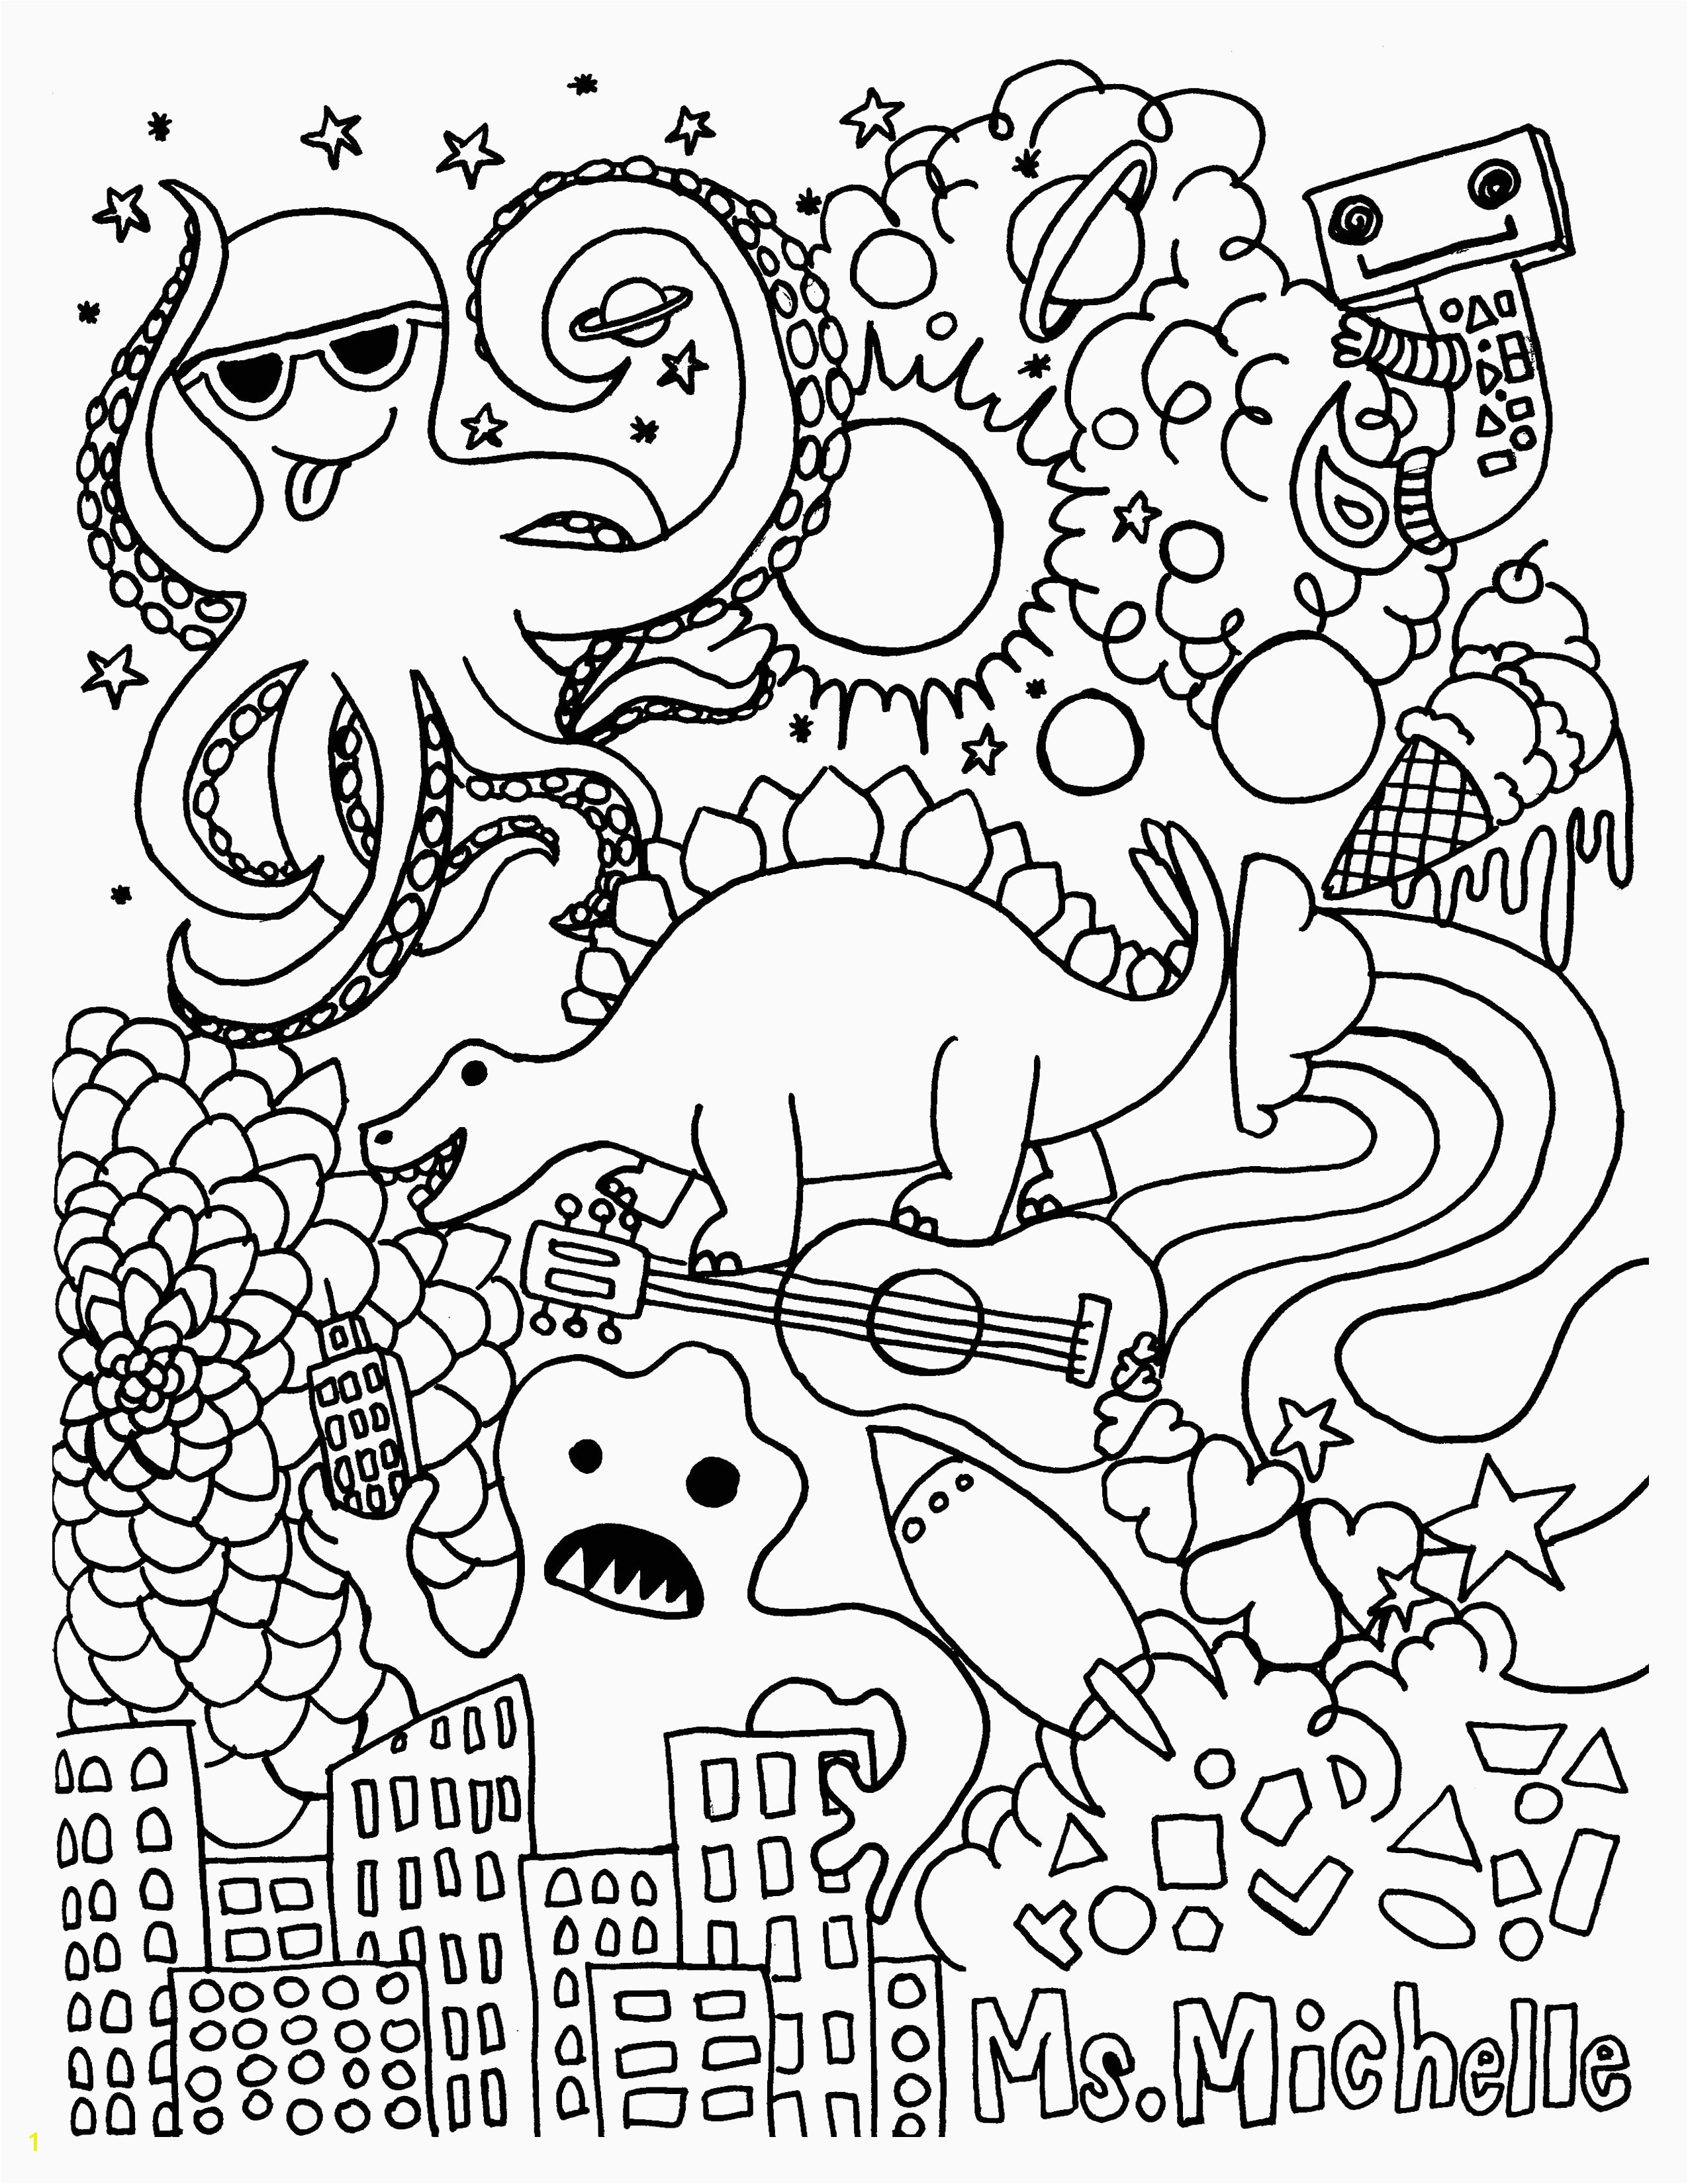 Color Sheets for Kids Inspirational Cool Coloring Page Unique Witch Coloring Pages New Crayola Pages 0d